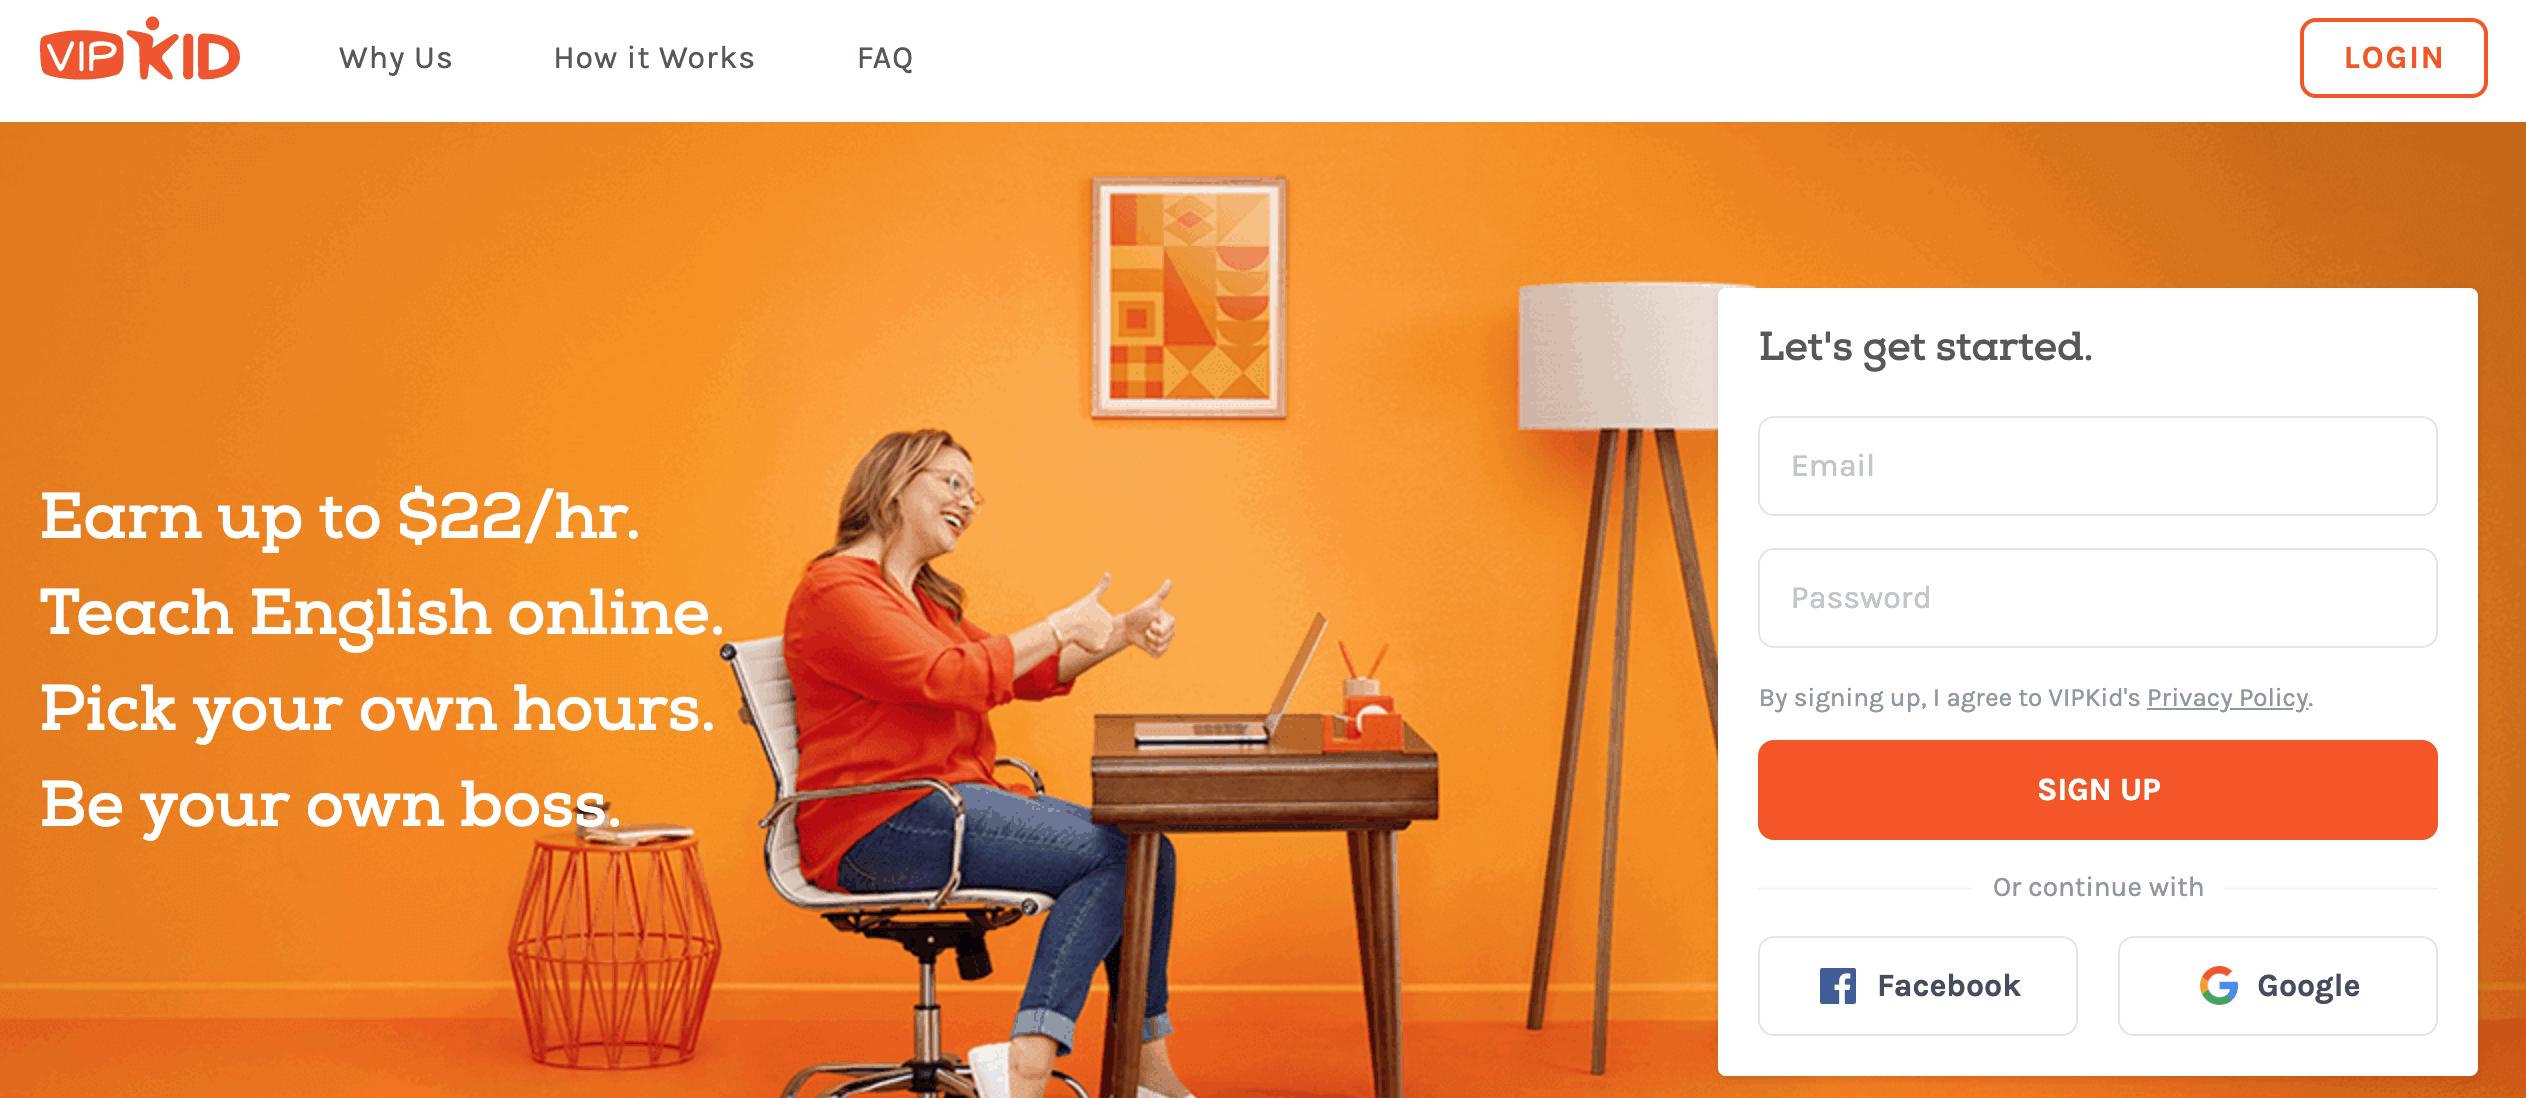 VIPKid Sign-Up Page